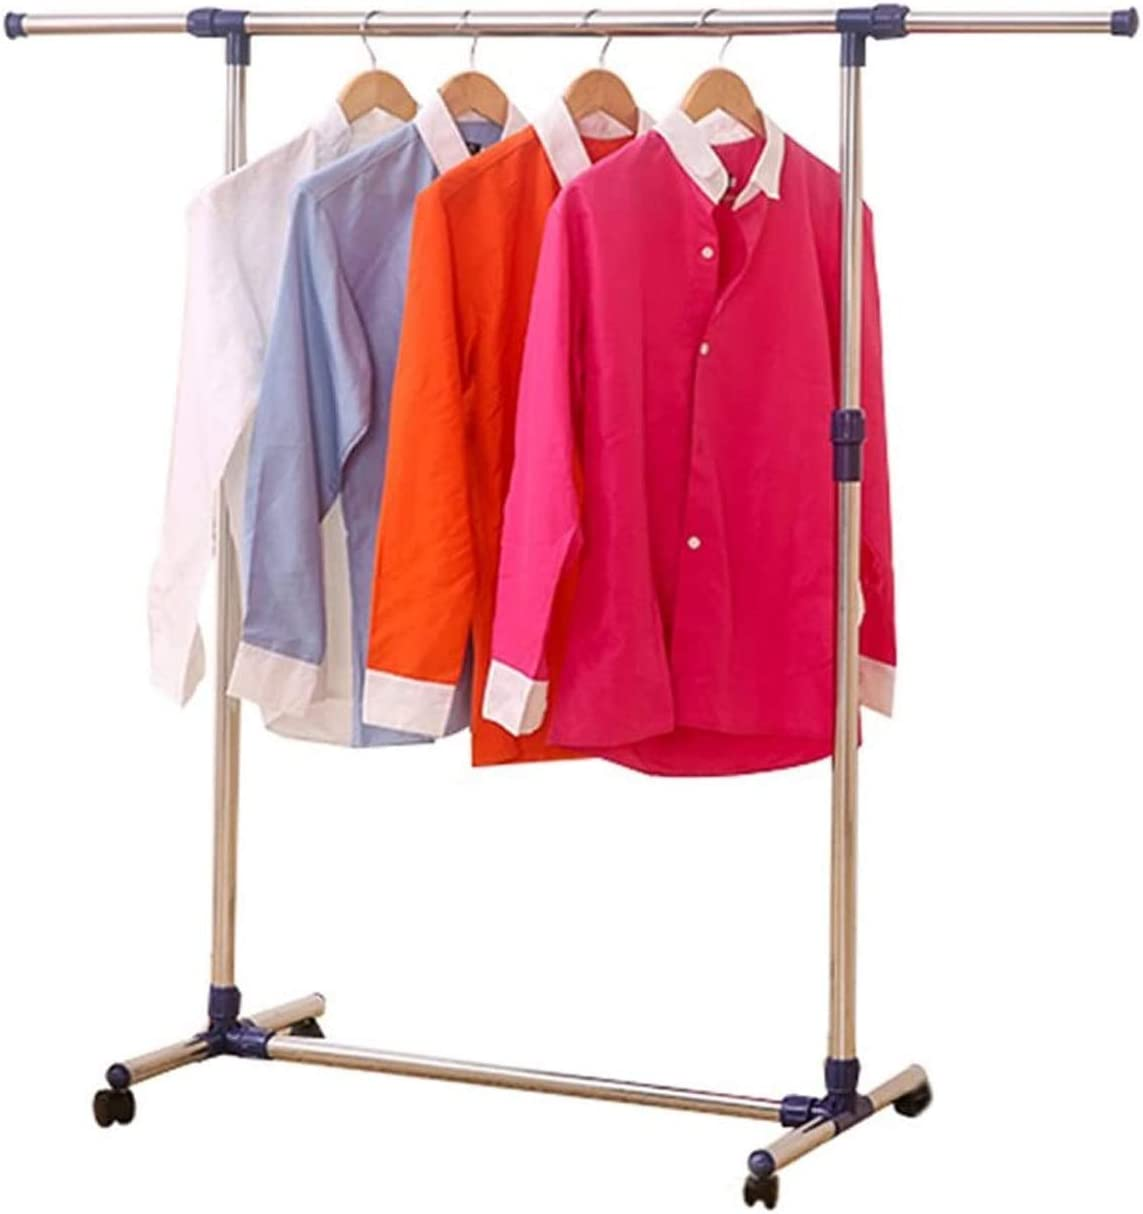 Clothes Boston Mall Drying Rack Laundry Storage Telescopic R Single Products Max 89% OFF